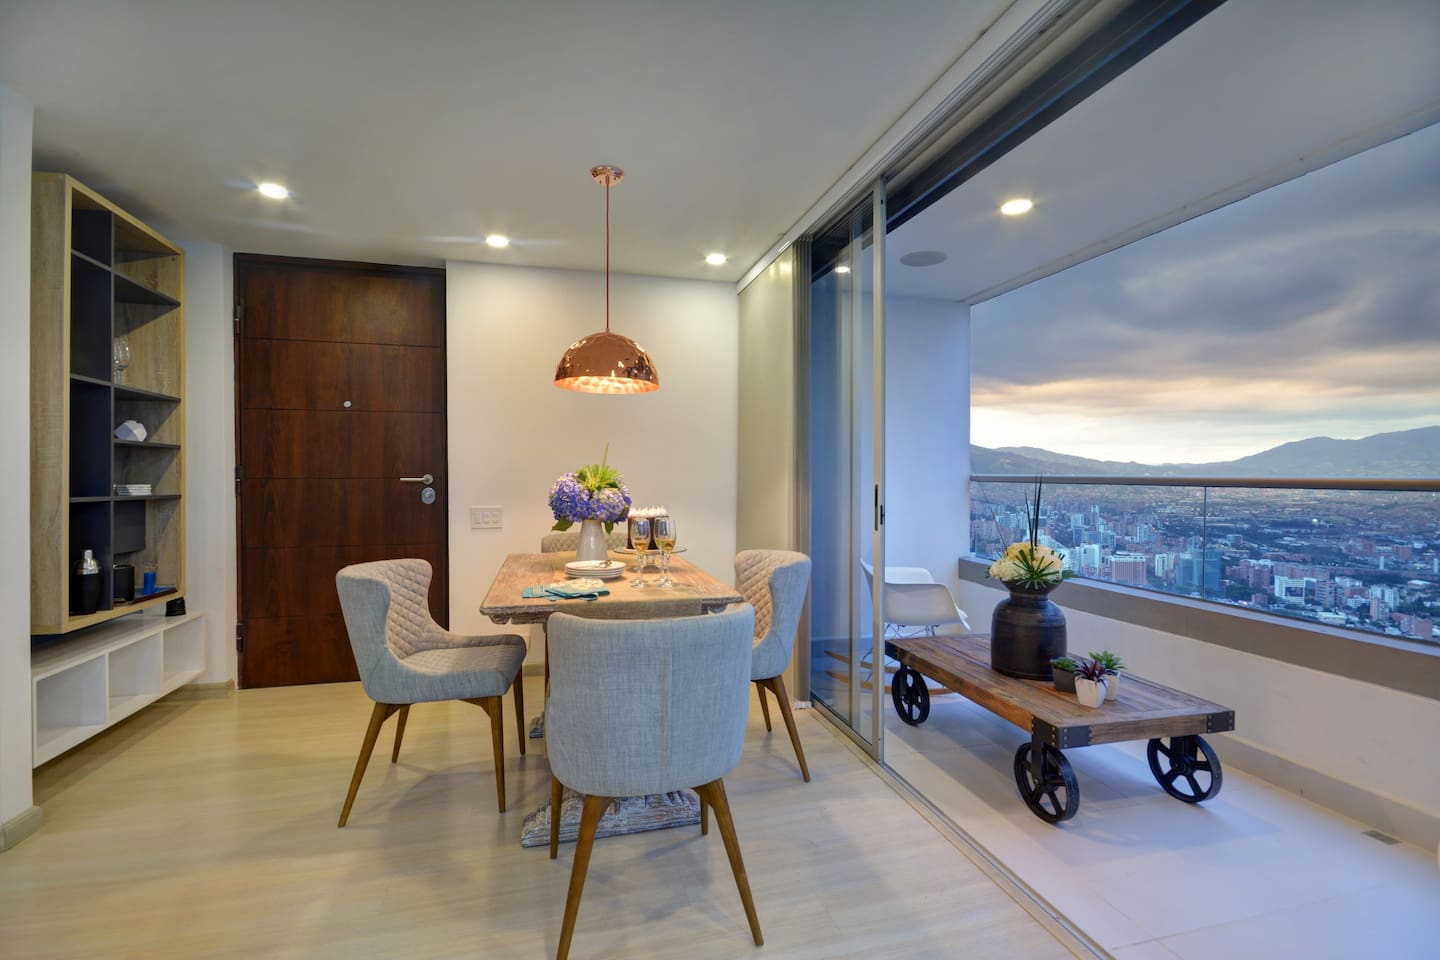 Dining room and balcony